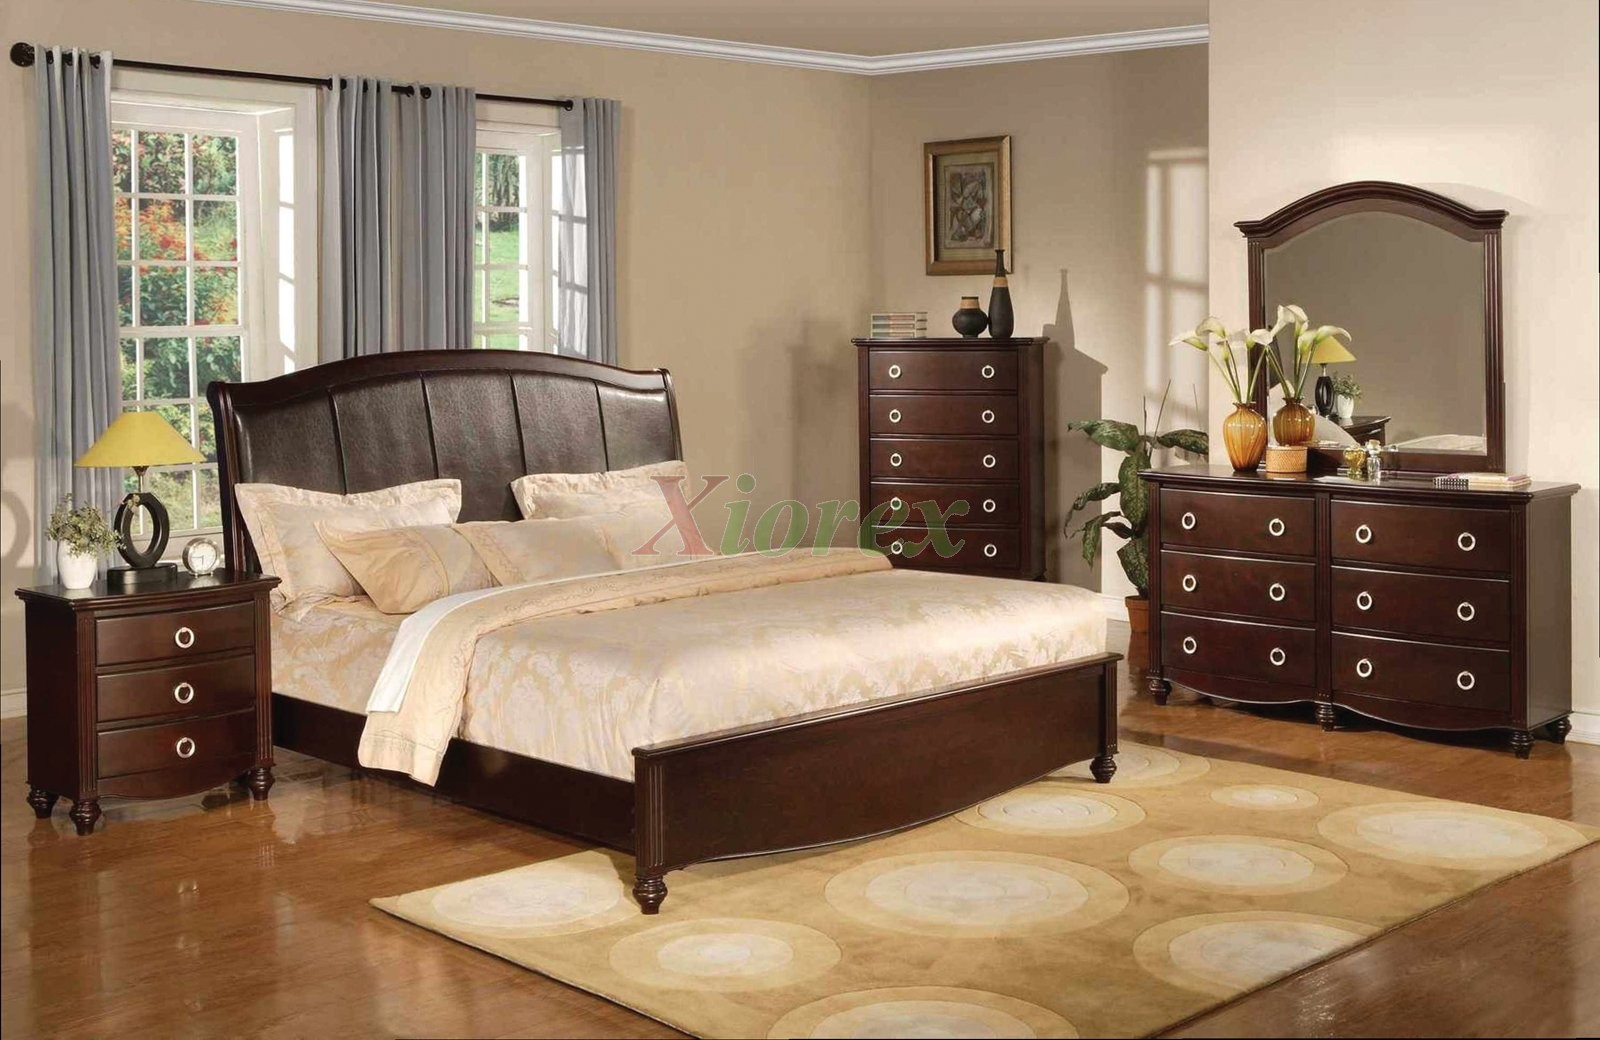 Platform Bedroom Furniture Set With Leather Headboard 133 With Bedroom Sofas And Chairs (View 11 of 15)